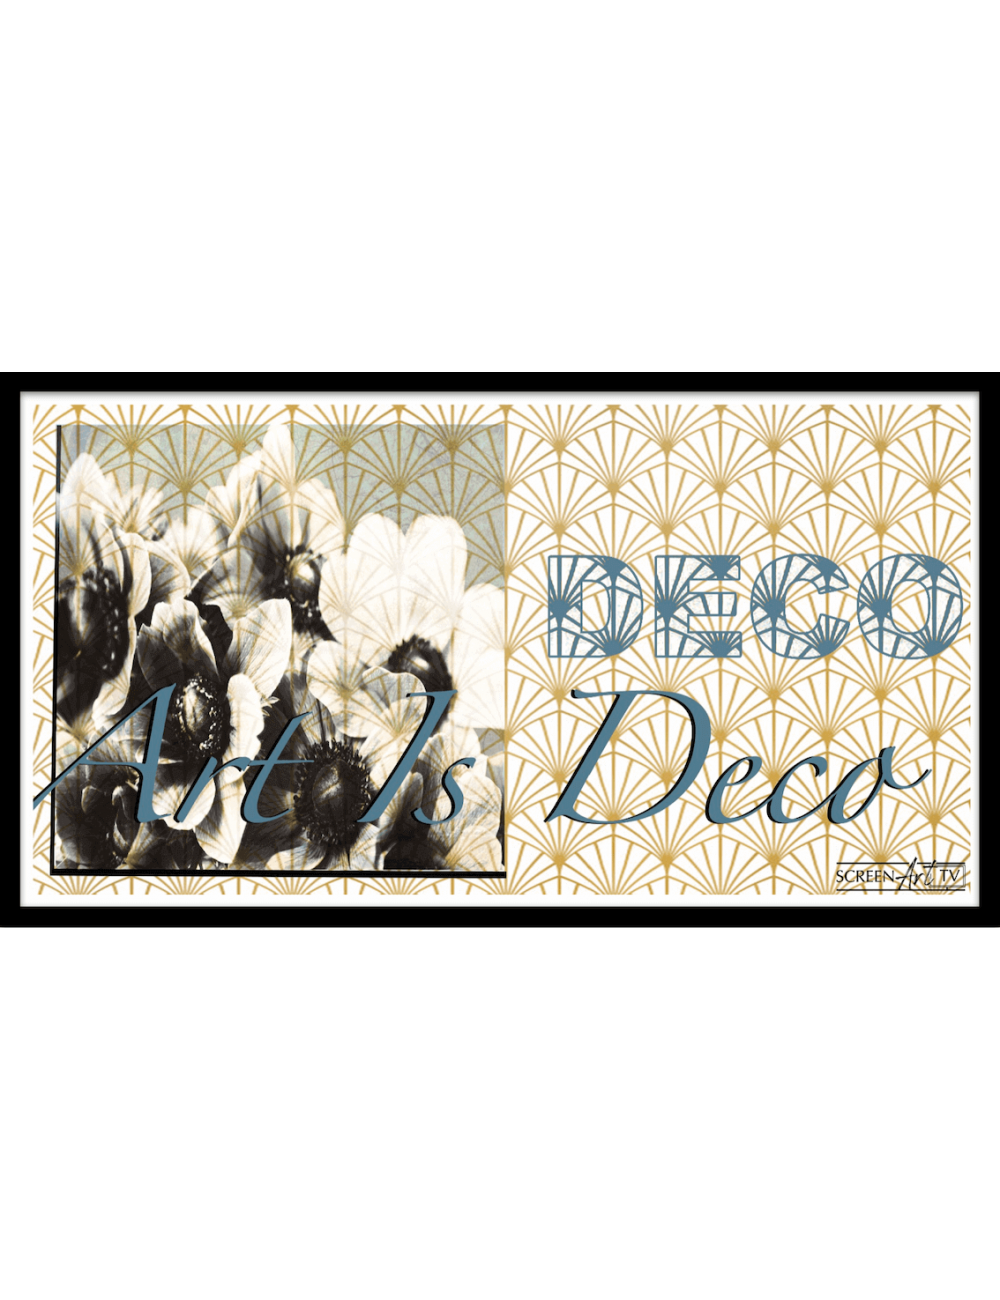 23 1 ART IS DECO ART DCO